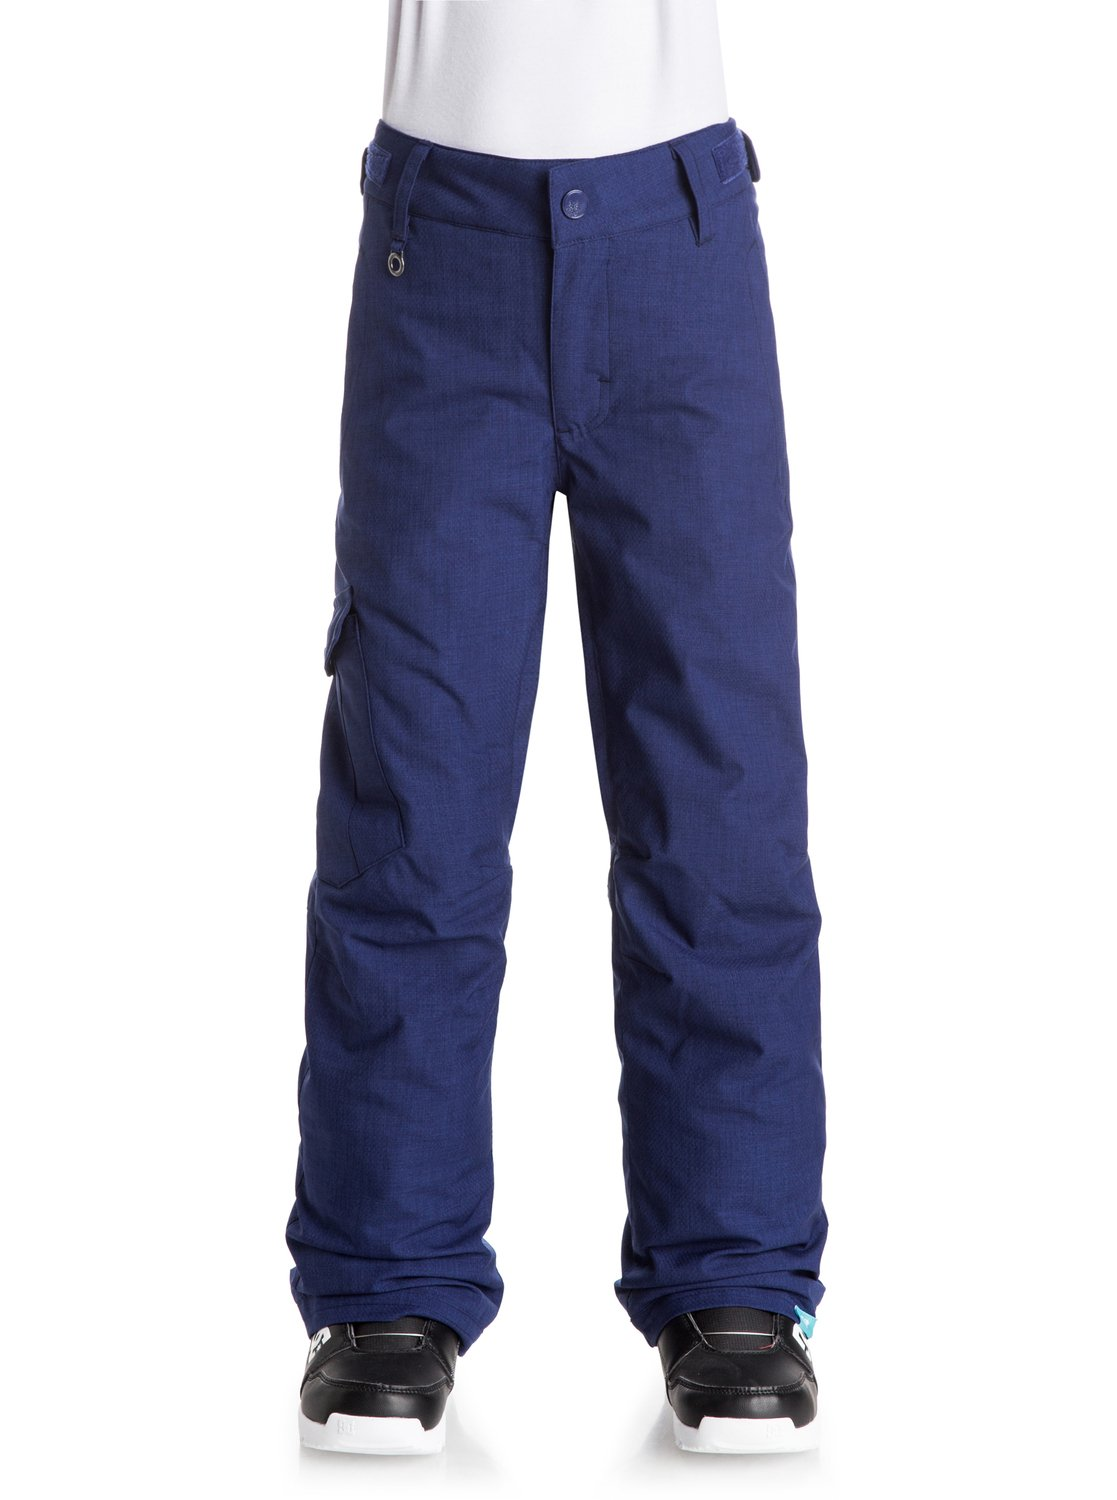 Сноубордические штаны TonicLooser fit for a relaxed cargo look, the Tonic snow pants for girls complete the look with patched side pockets and a drawcord adjuster on the waist. Crafted with 10K ROXY DryFlight® technology waterproofing for reliable waterproof and breathable protection in a wide range of winter conditions. An easy-to-wear regular fit allows space to layer and is complemented by Warmflight® level 2 insulation for low-bulk warmth, lightweight, breathable taffeta and critically-taped seams for extra protection in the most exposed areas.<br>